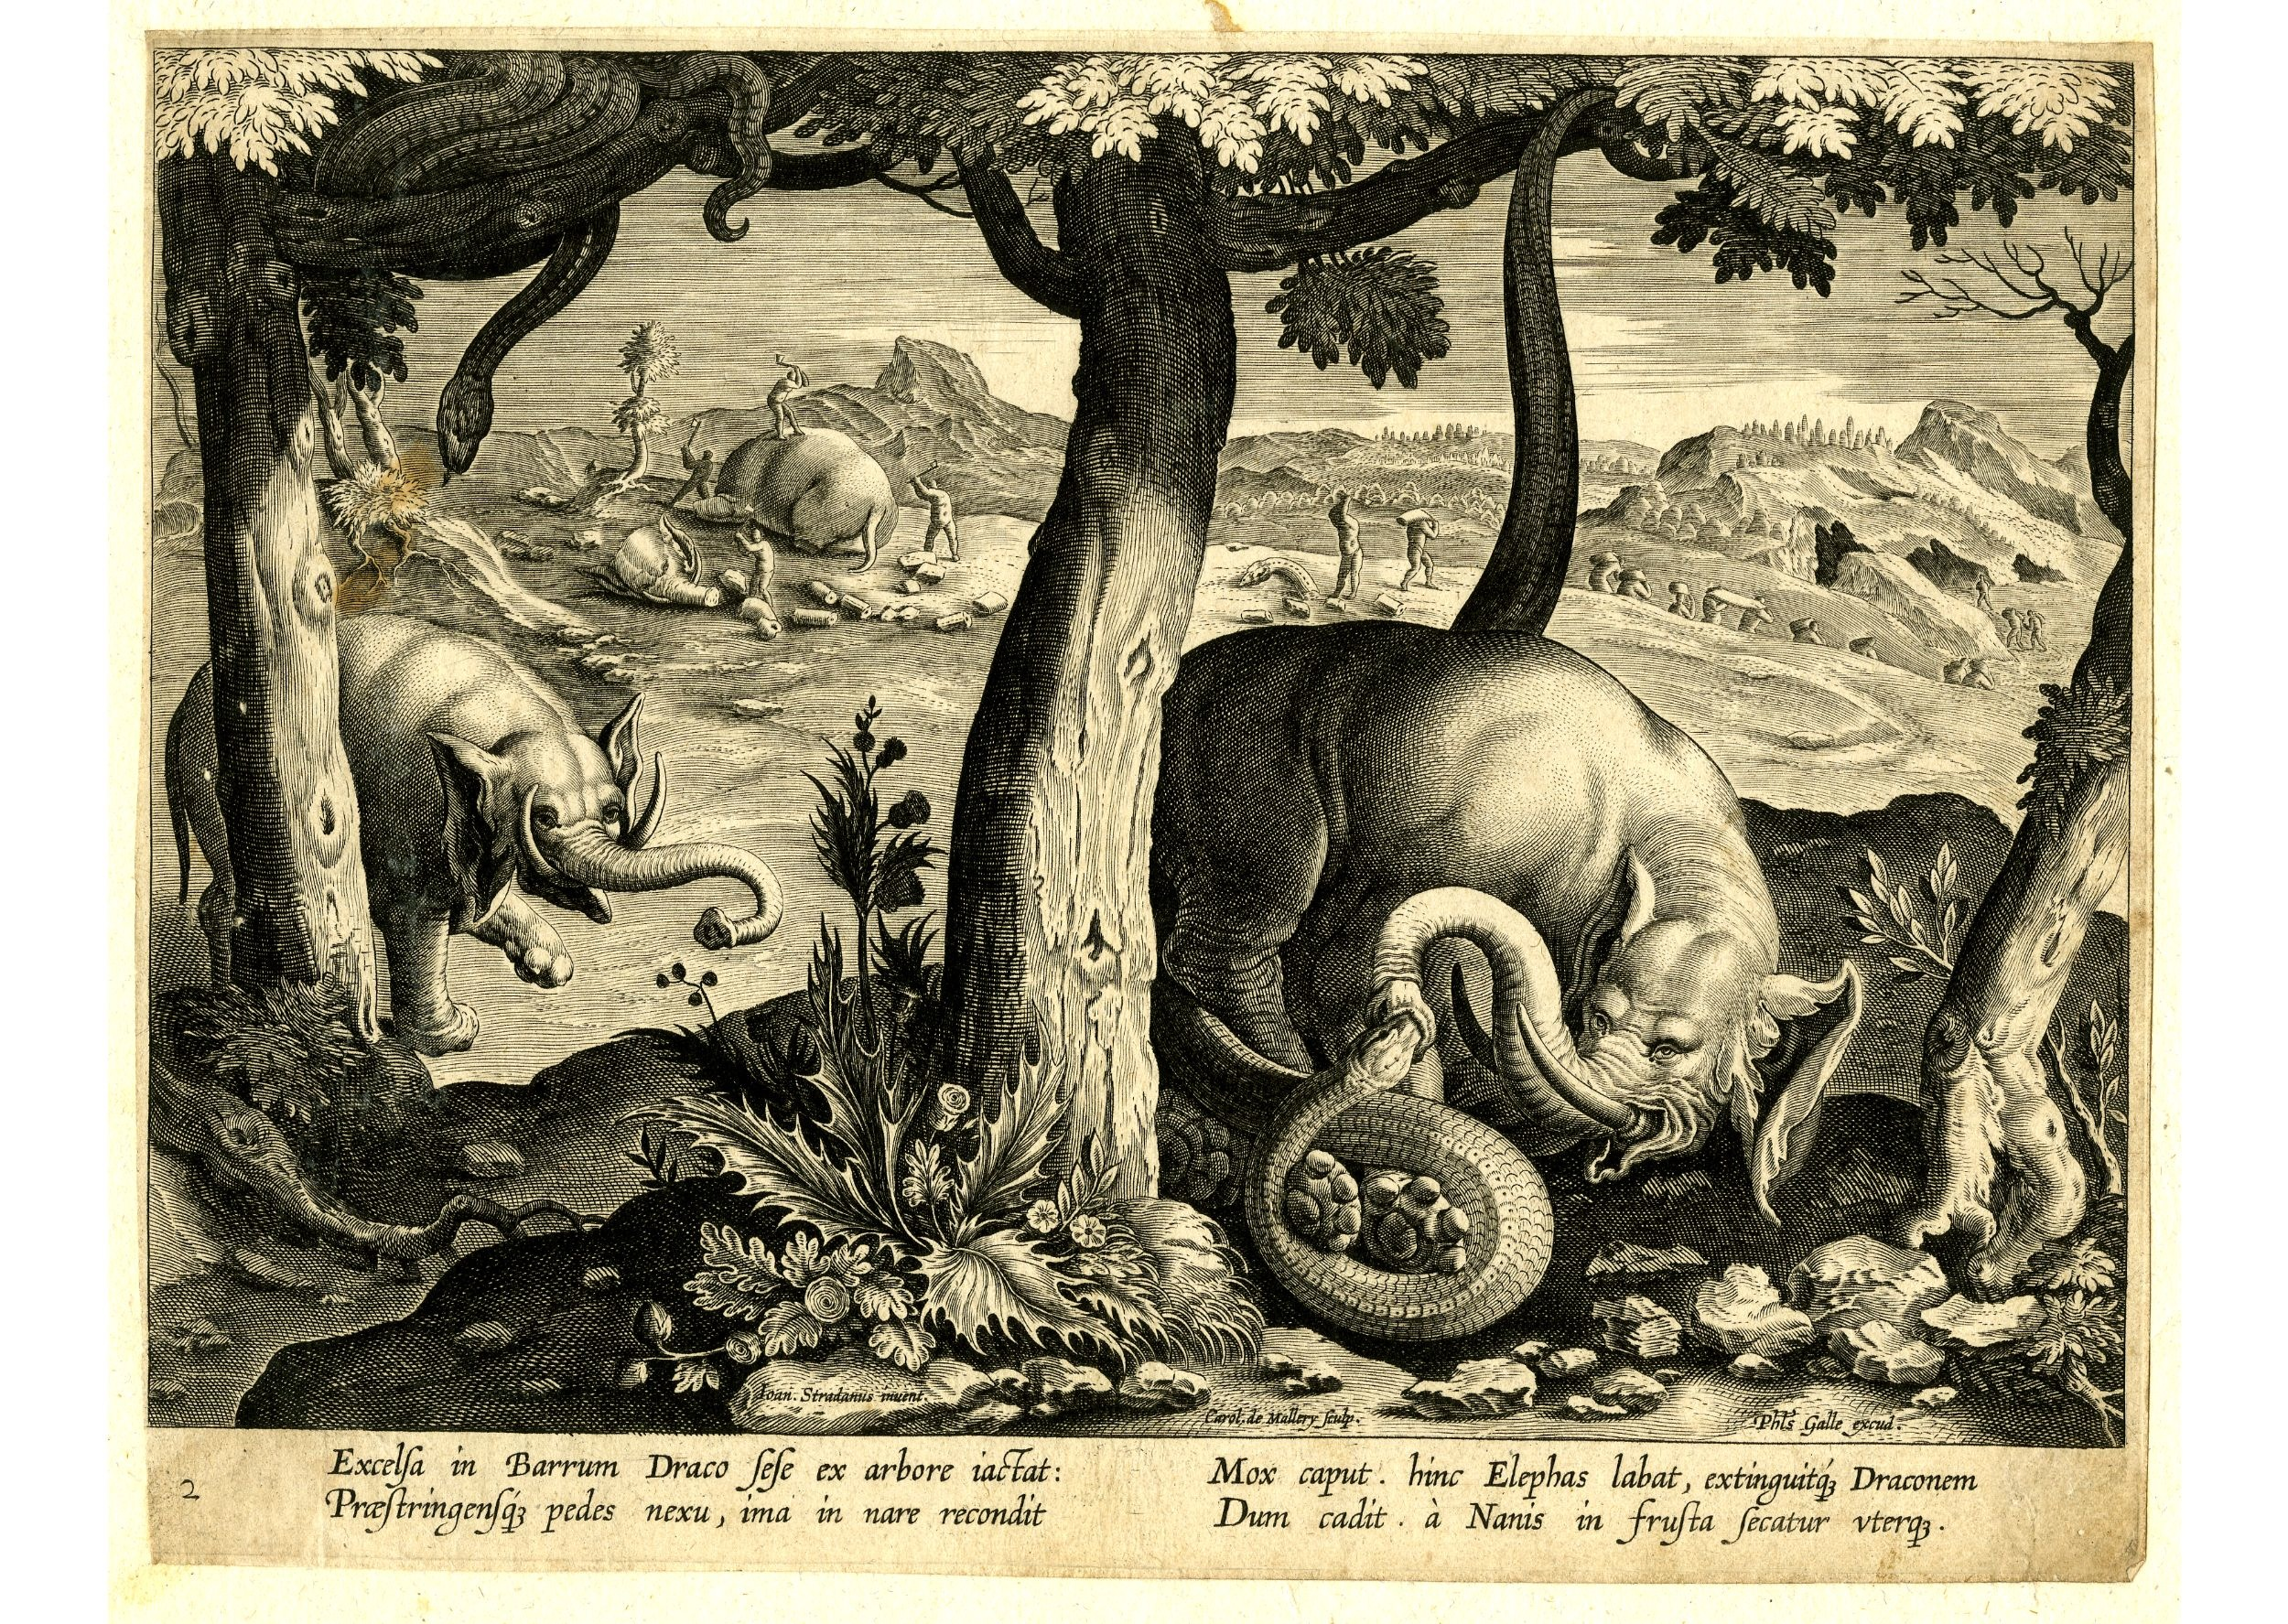 A Dragon and an Elephant Fighting to the Death